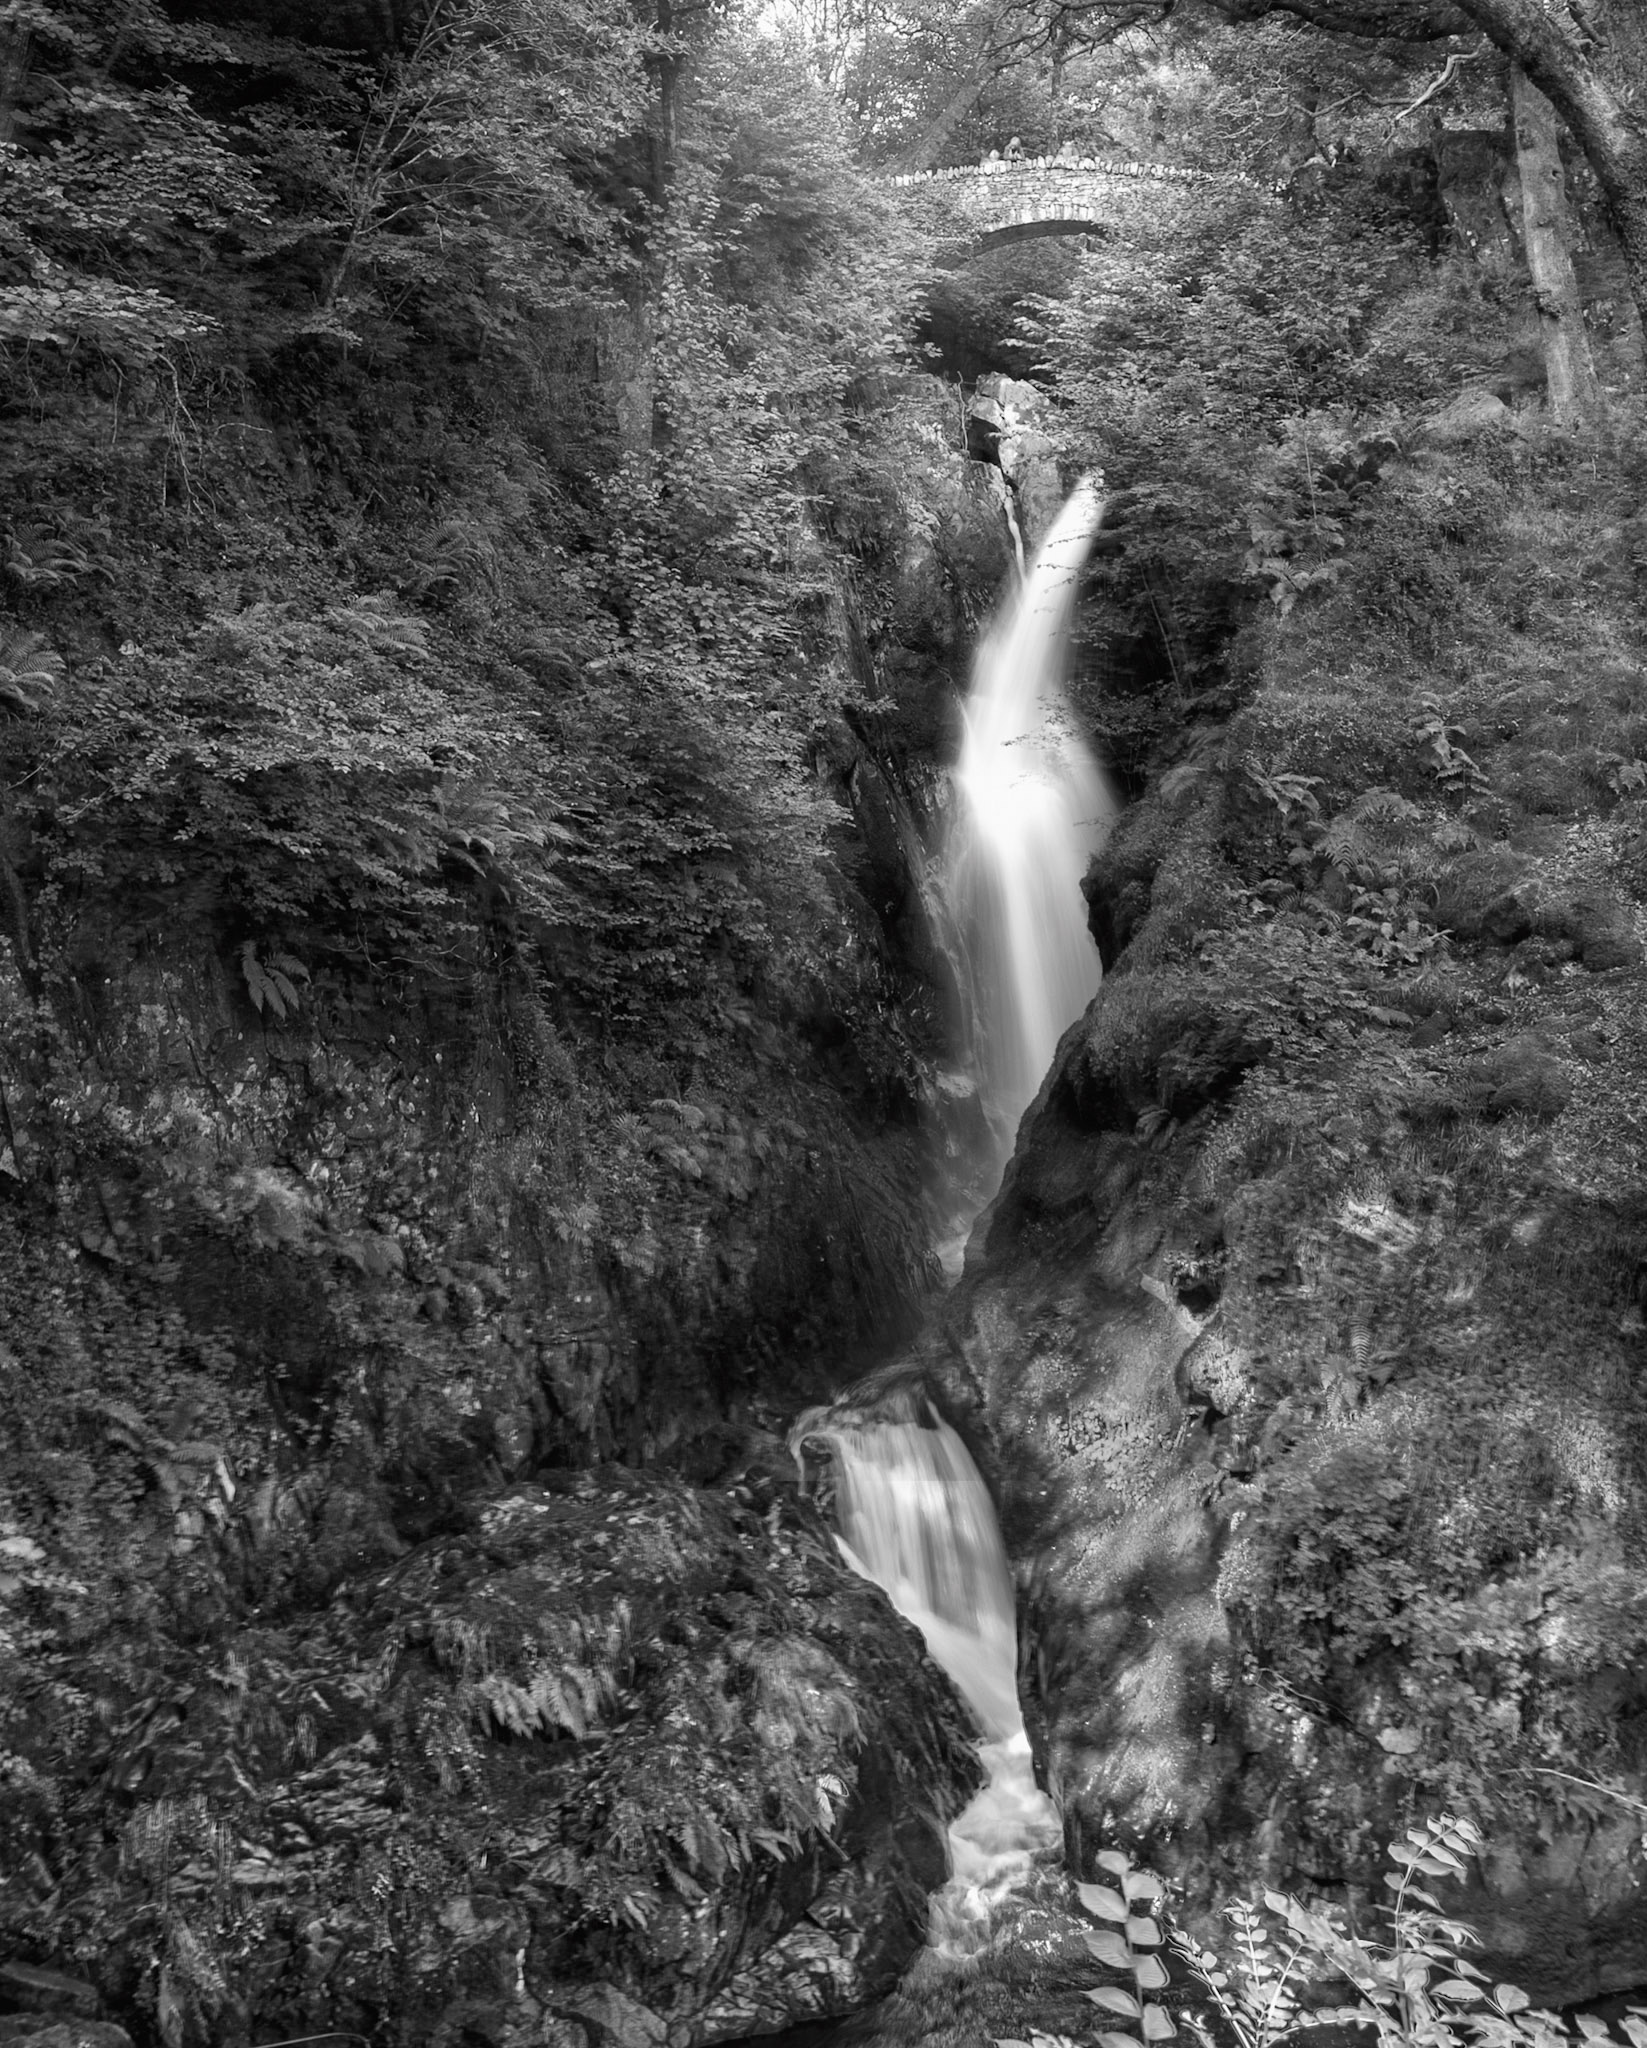 Aira Force, near Ullswater, Lakes District, England